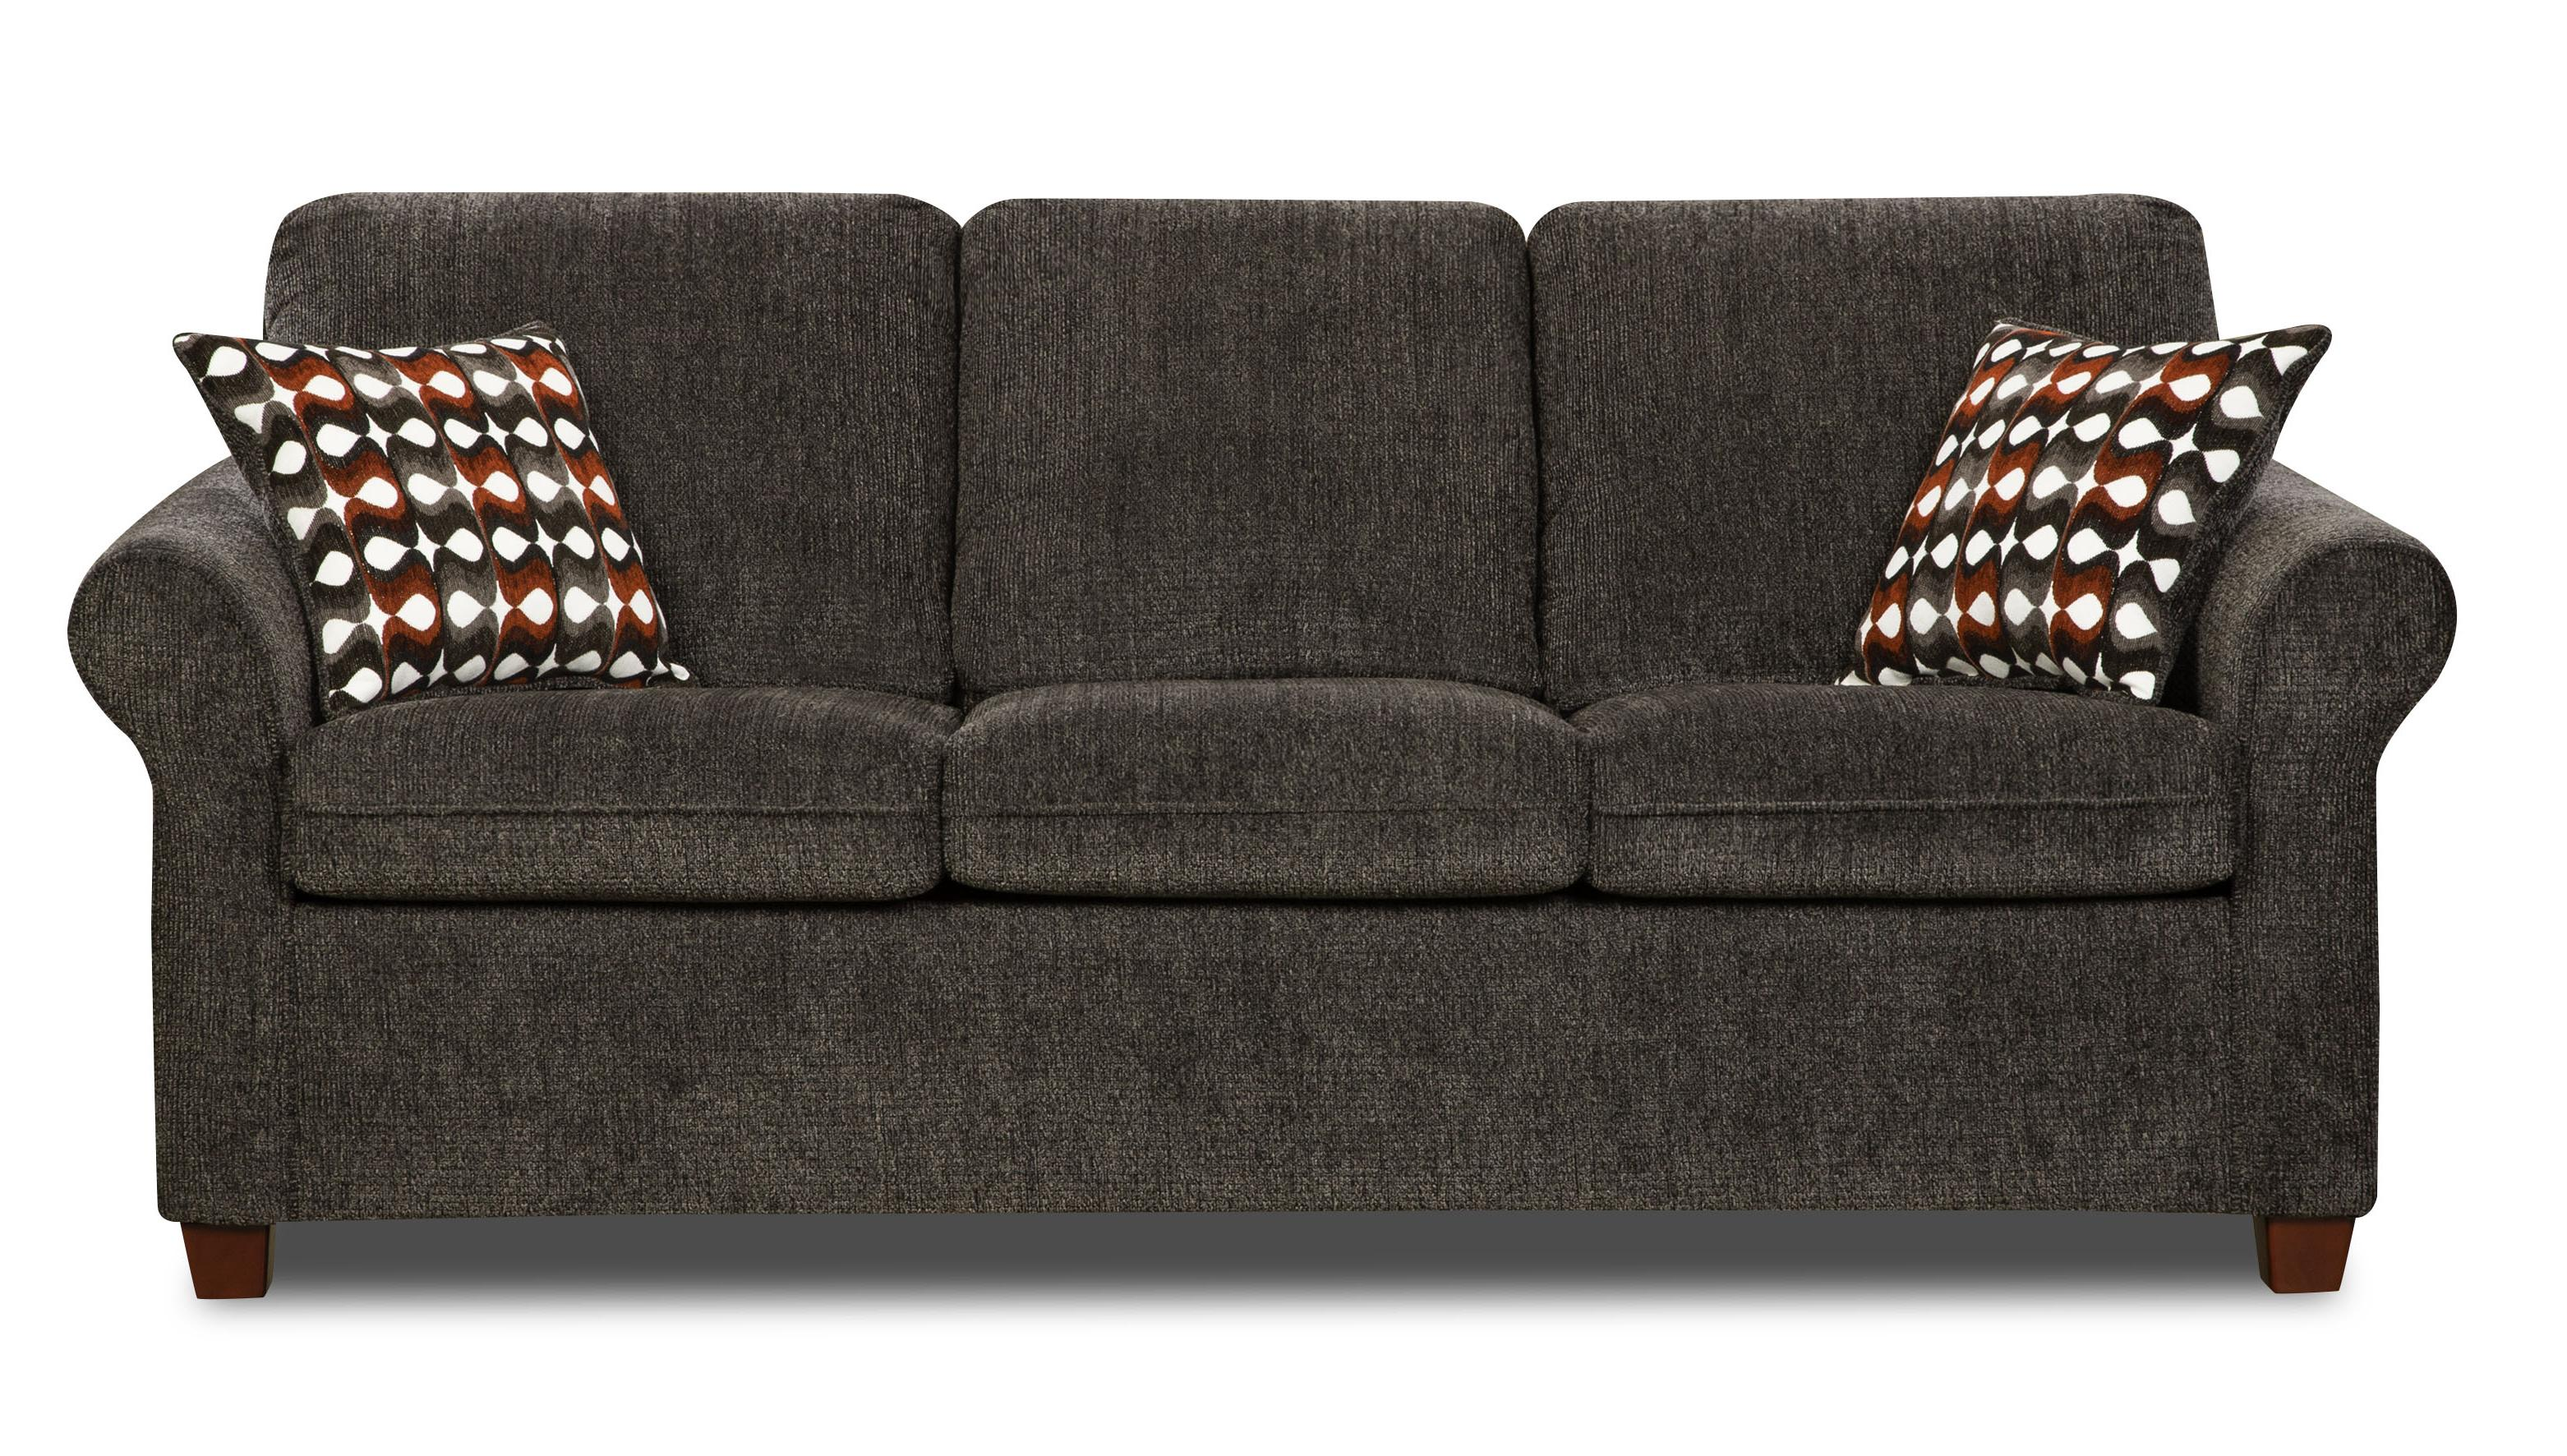 Simmons Upholstery 1630 Transitional Queen Sleeper - Item Number: 1630QSleeper-Charcoal